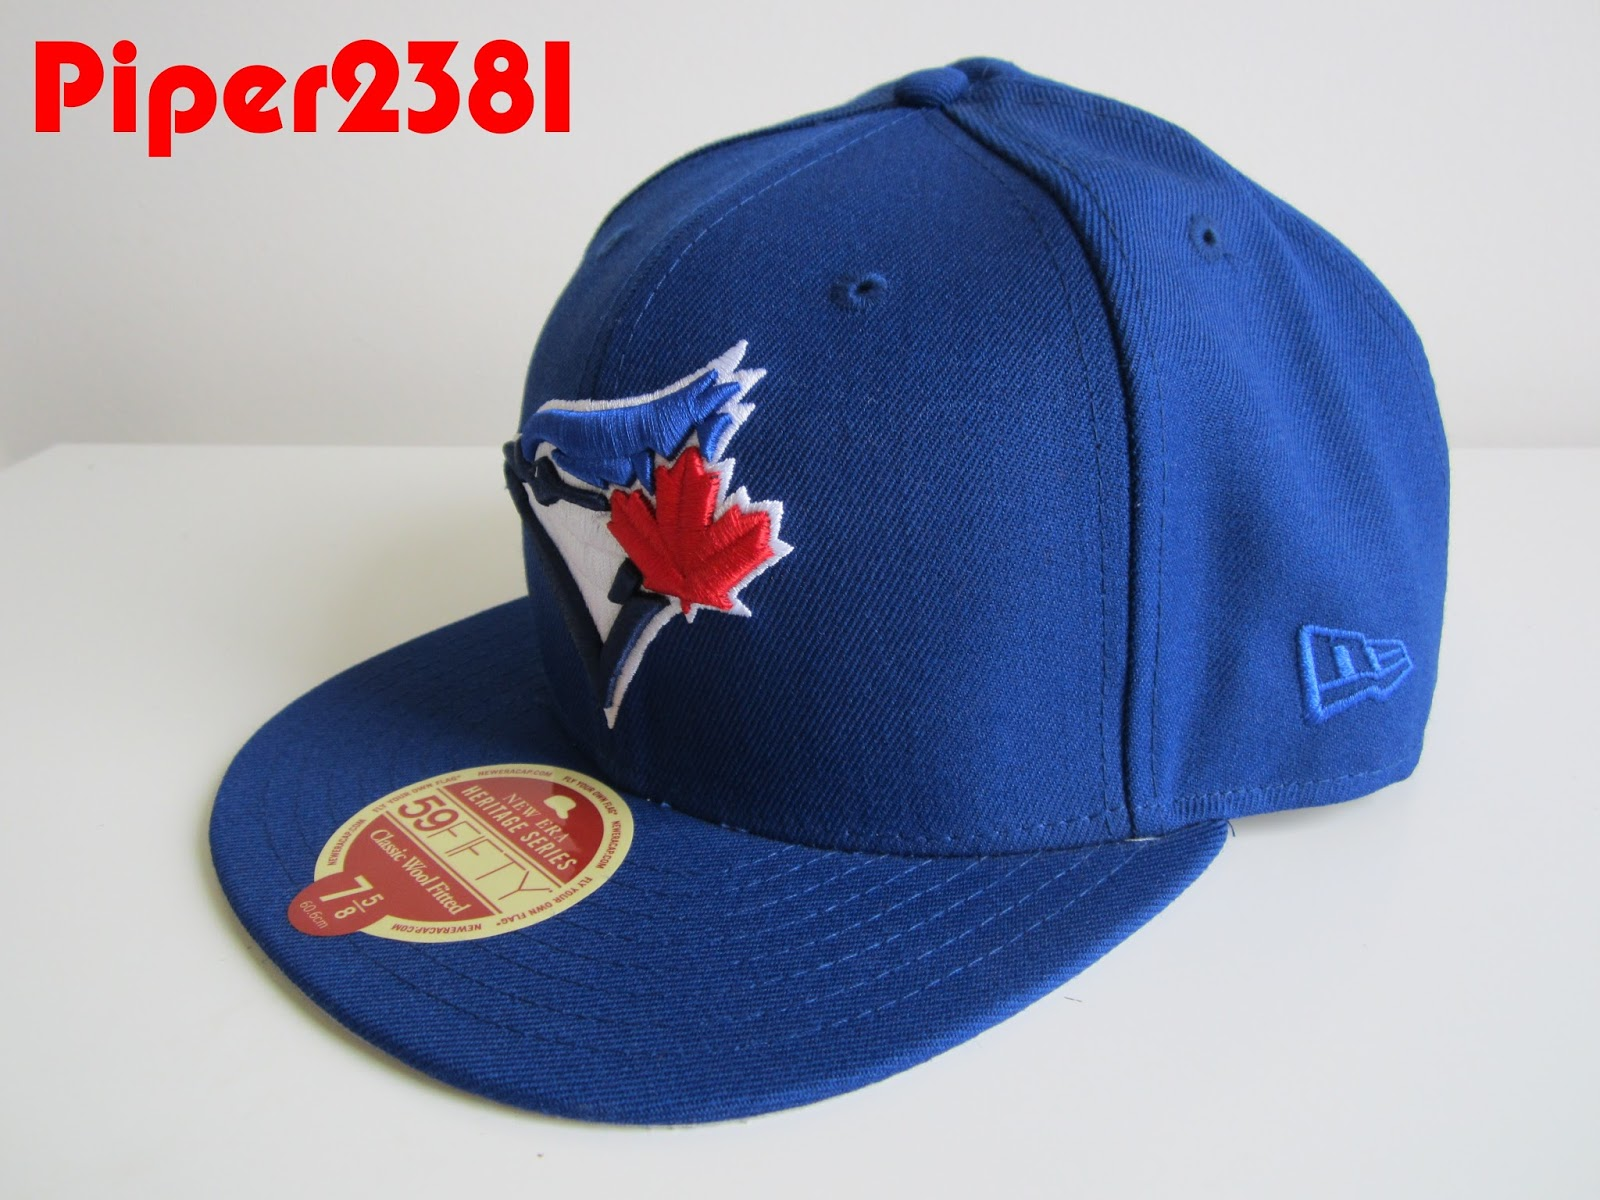 44e77b097bc The wool fitted that I m showcasing here is part of their Heritage Series  collection. The hats are 100% wool and are made similar to the classic MLB  hats ...